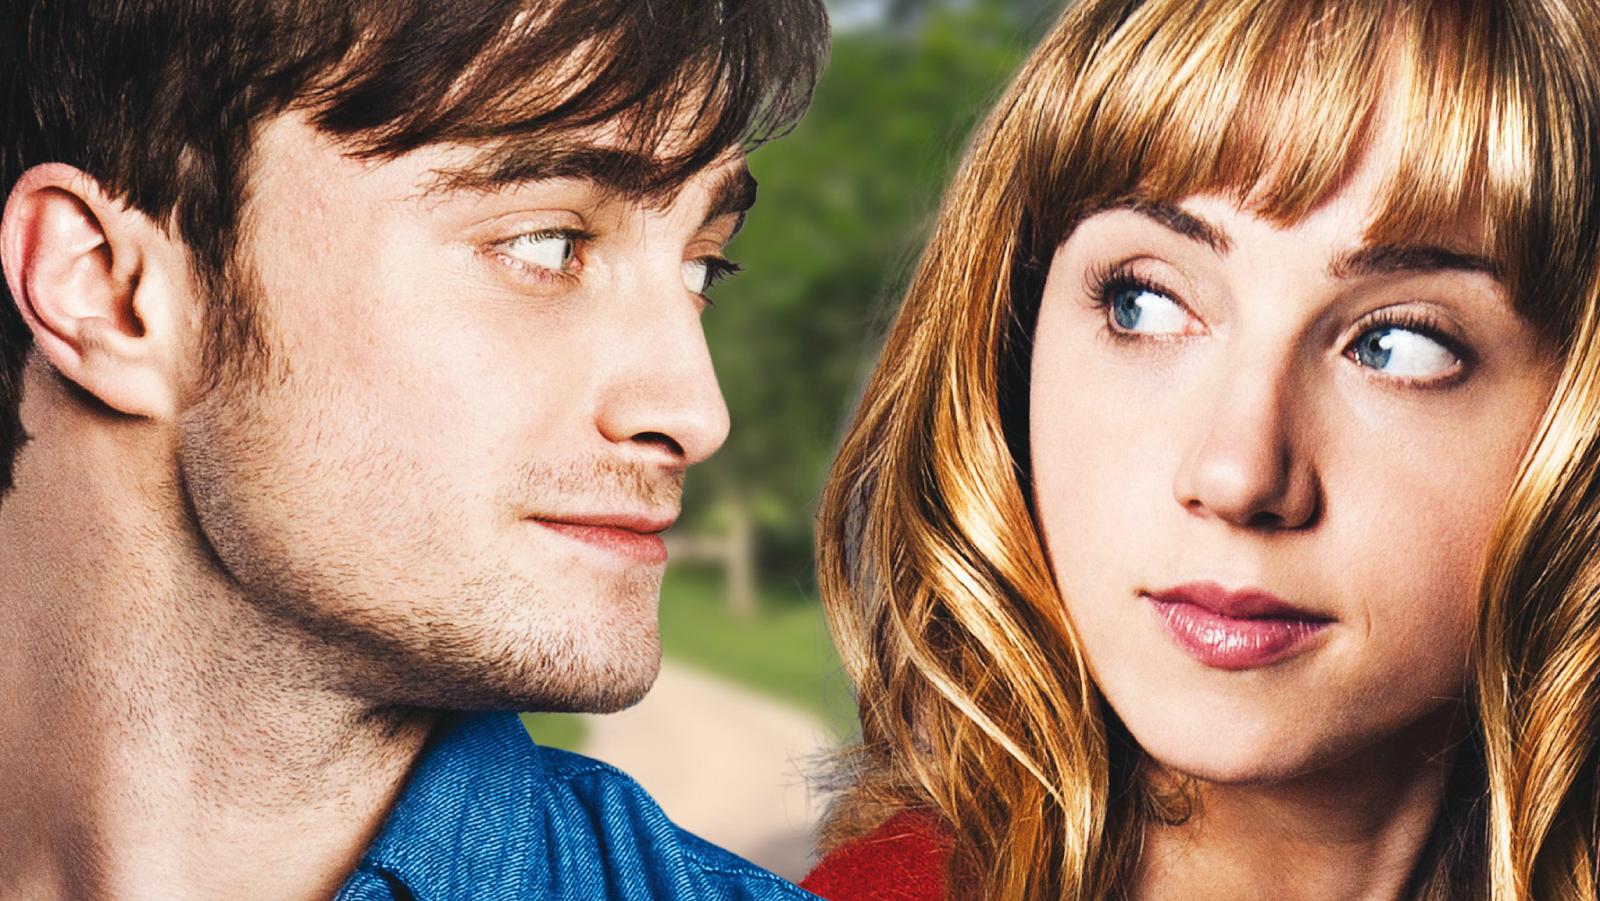 International movie poster for the 2013 film 'What If' starring Daniel Radcliffe and Zoe Kazan